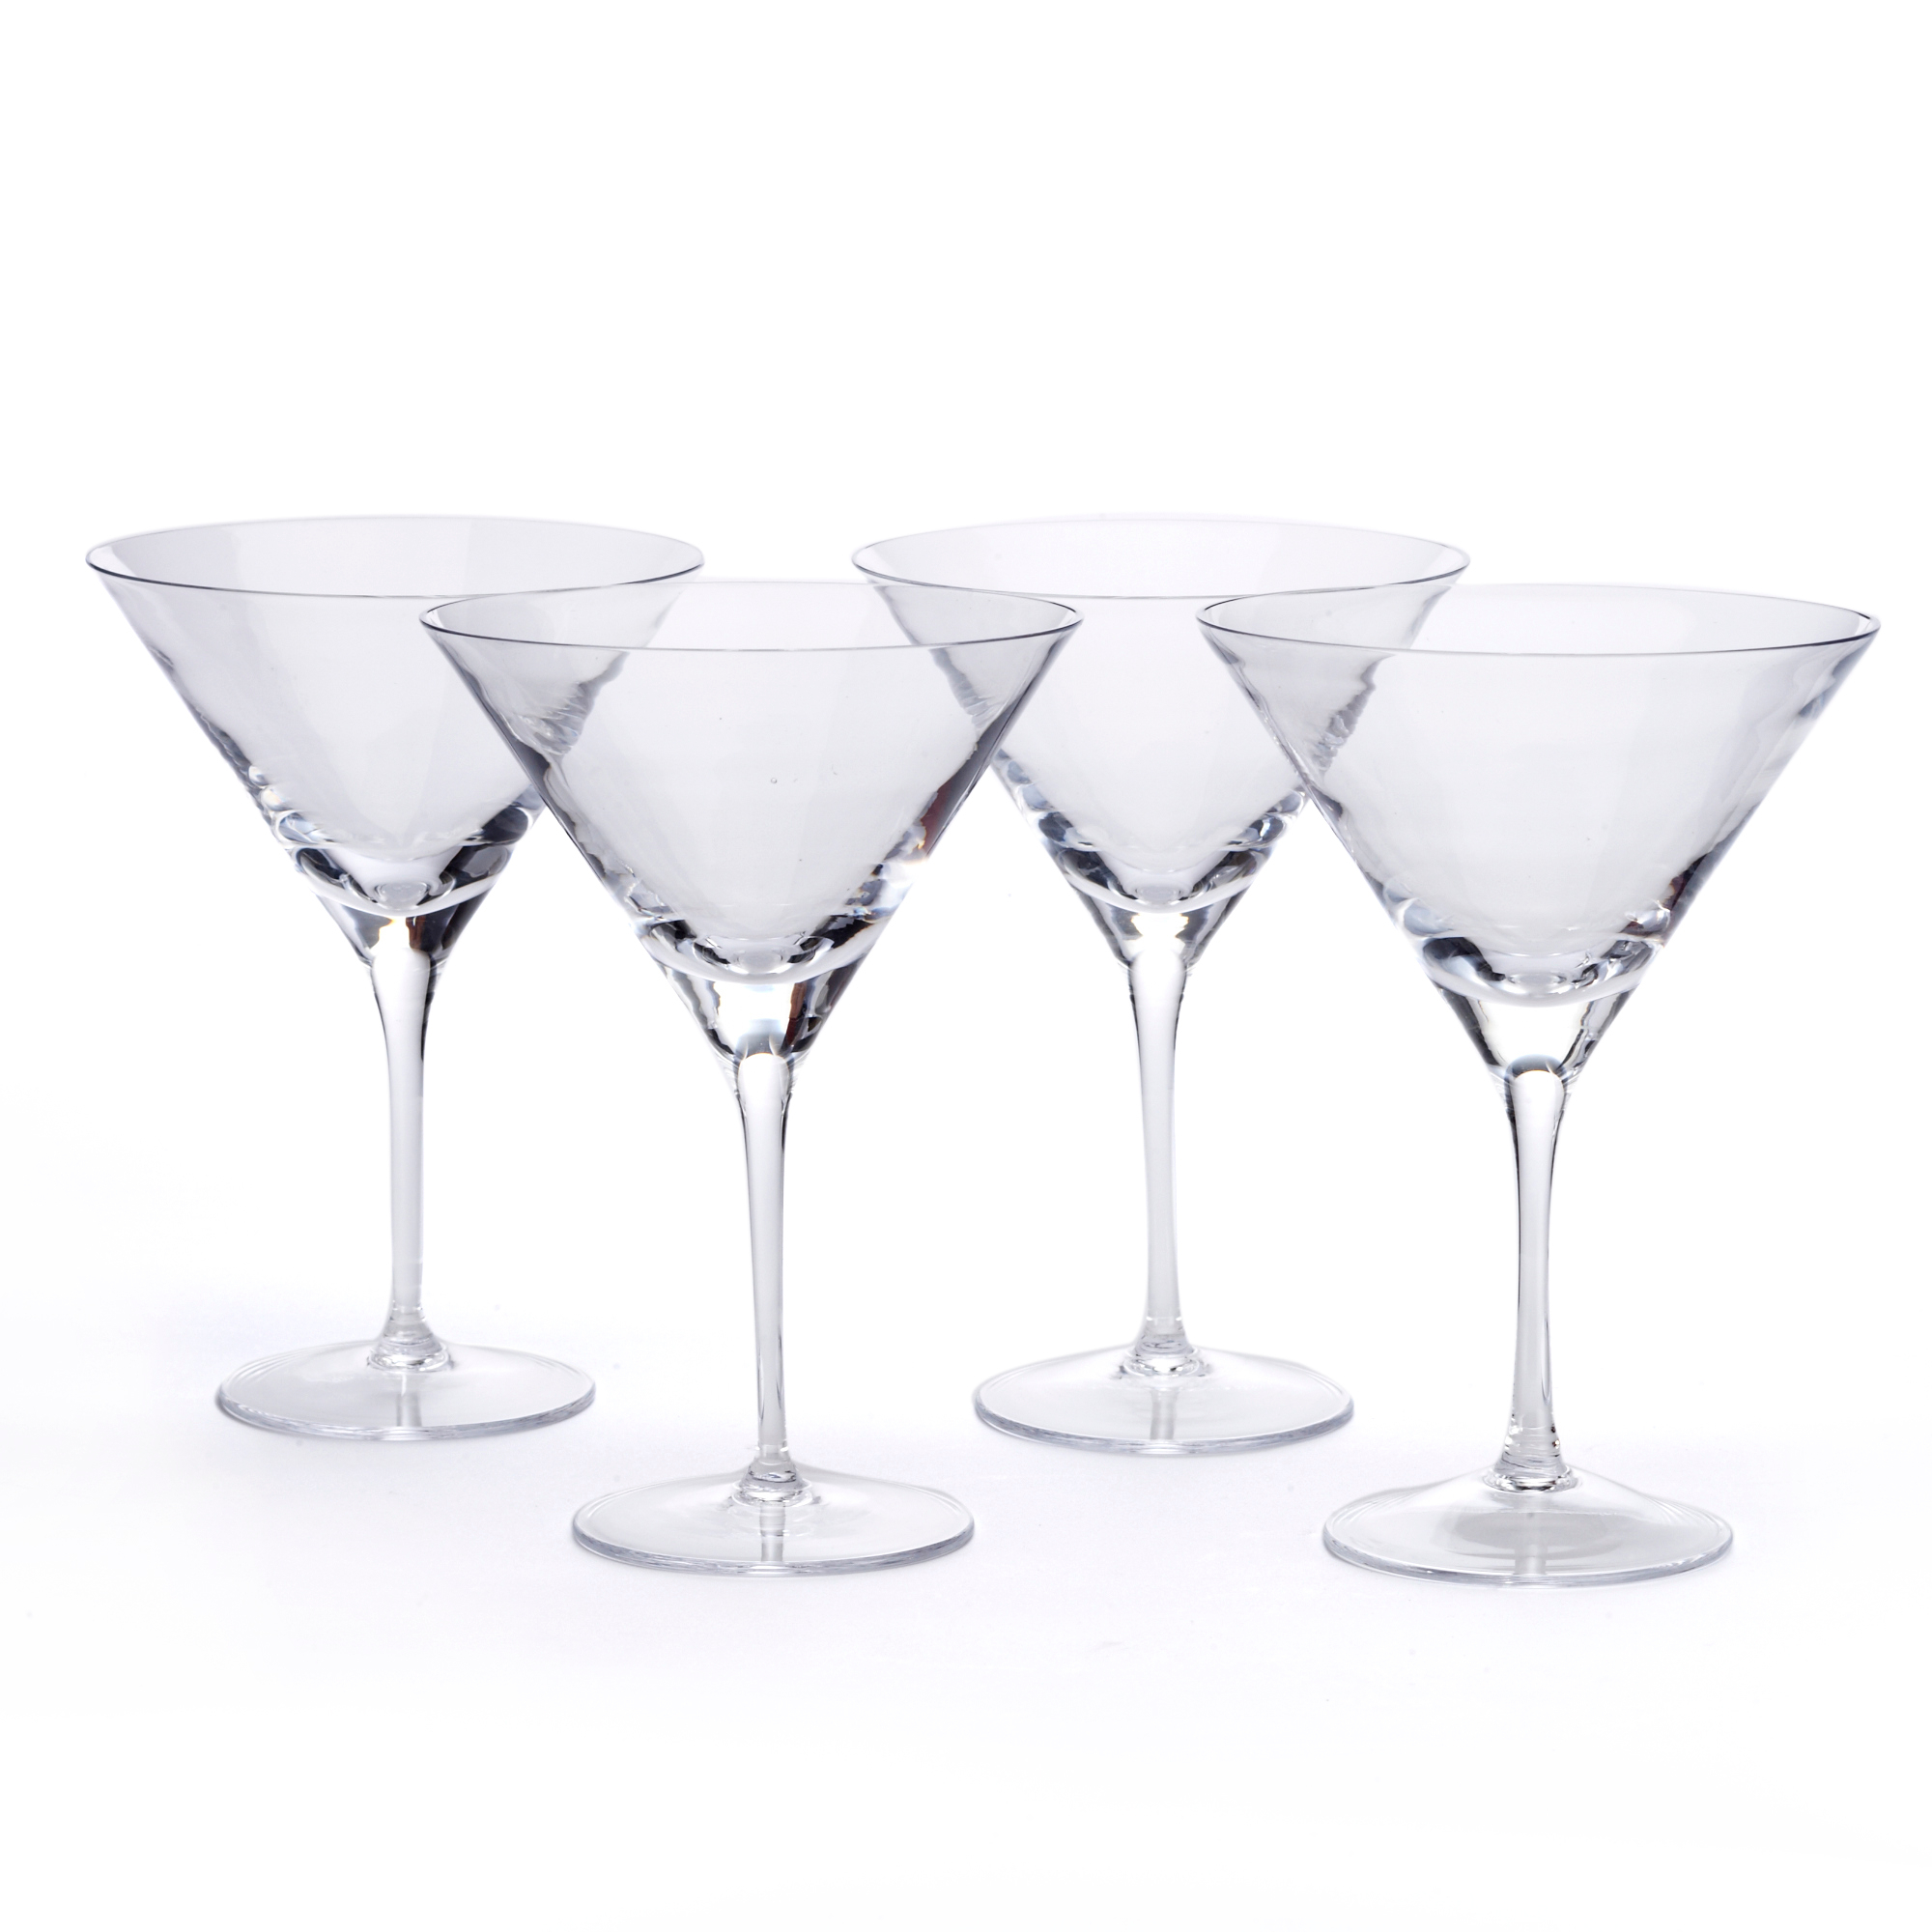 Gump's Martini Glasses, Set of 4